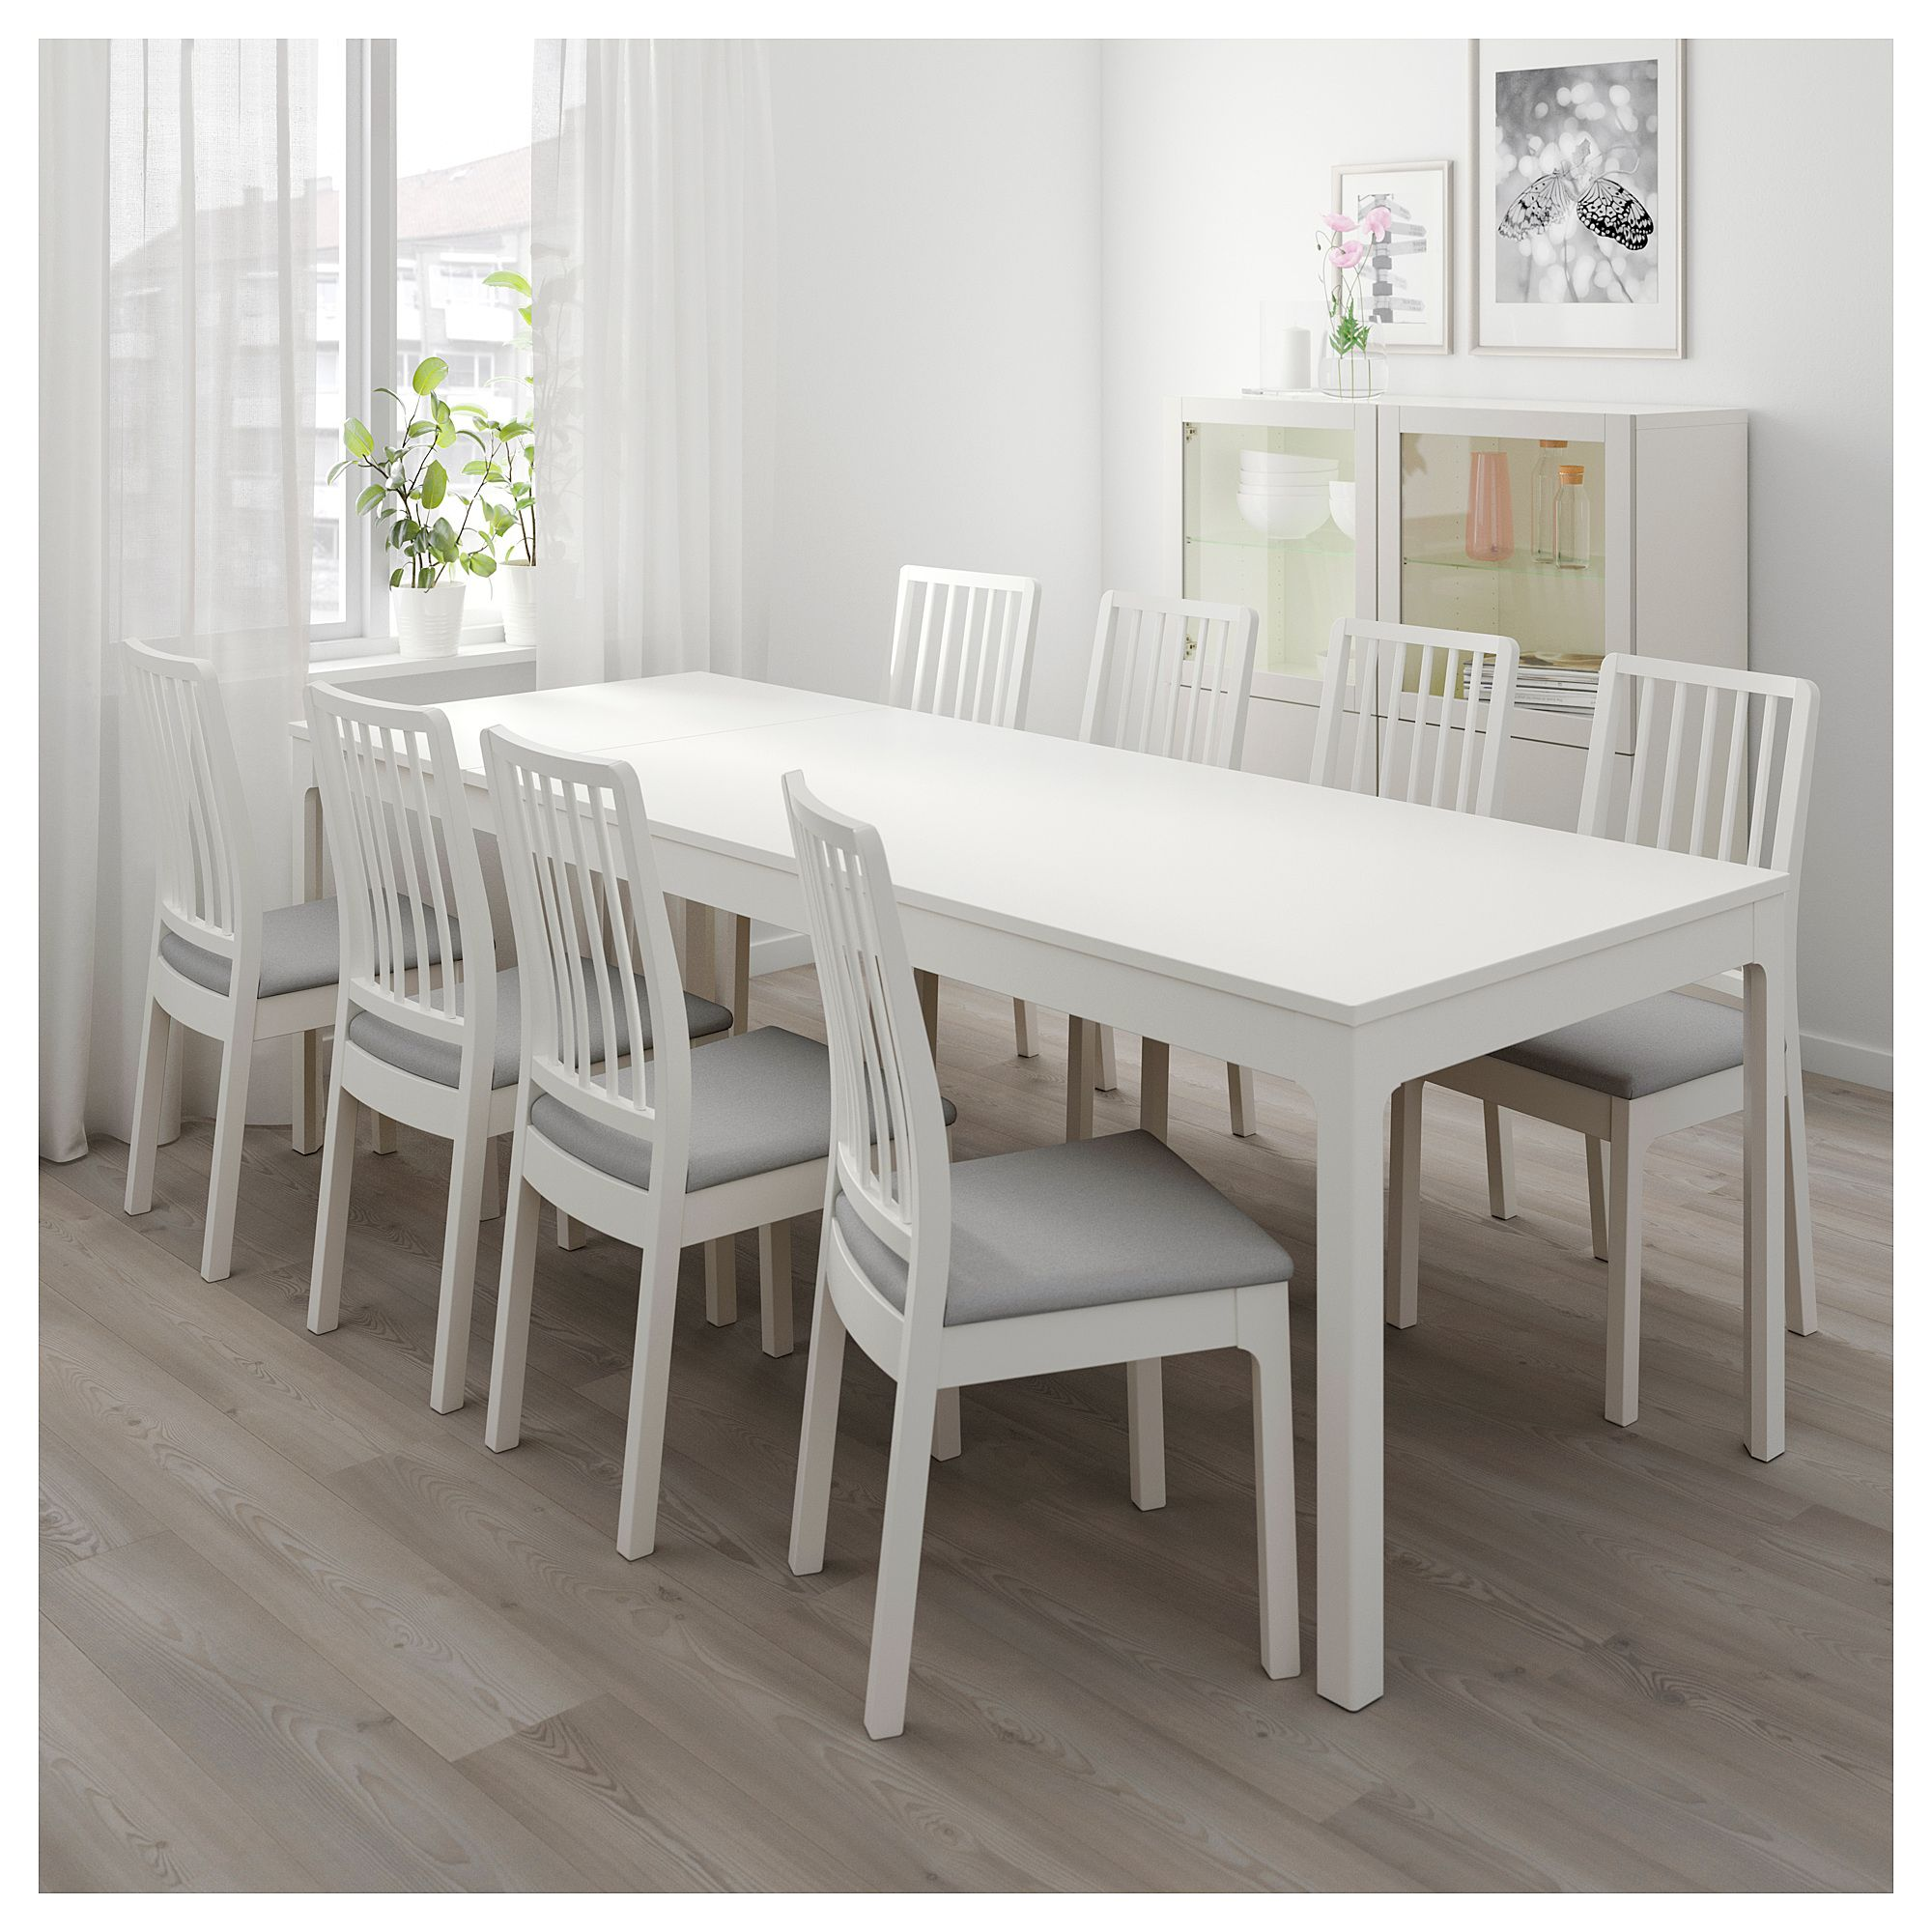 Fresh Kitchen Ikea Kitchen Table And Chairs Set With: EKEDALEN / Table And 6 Chairs White, Orrsta Light